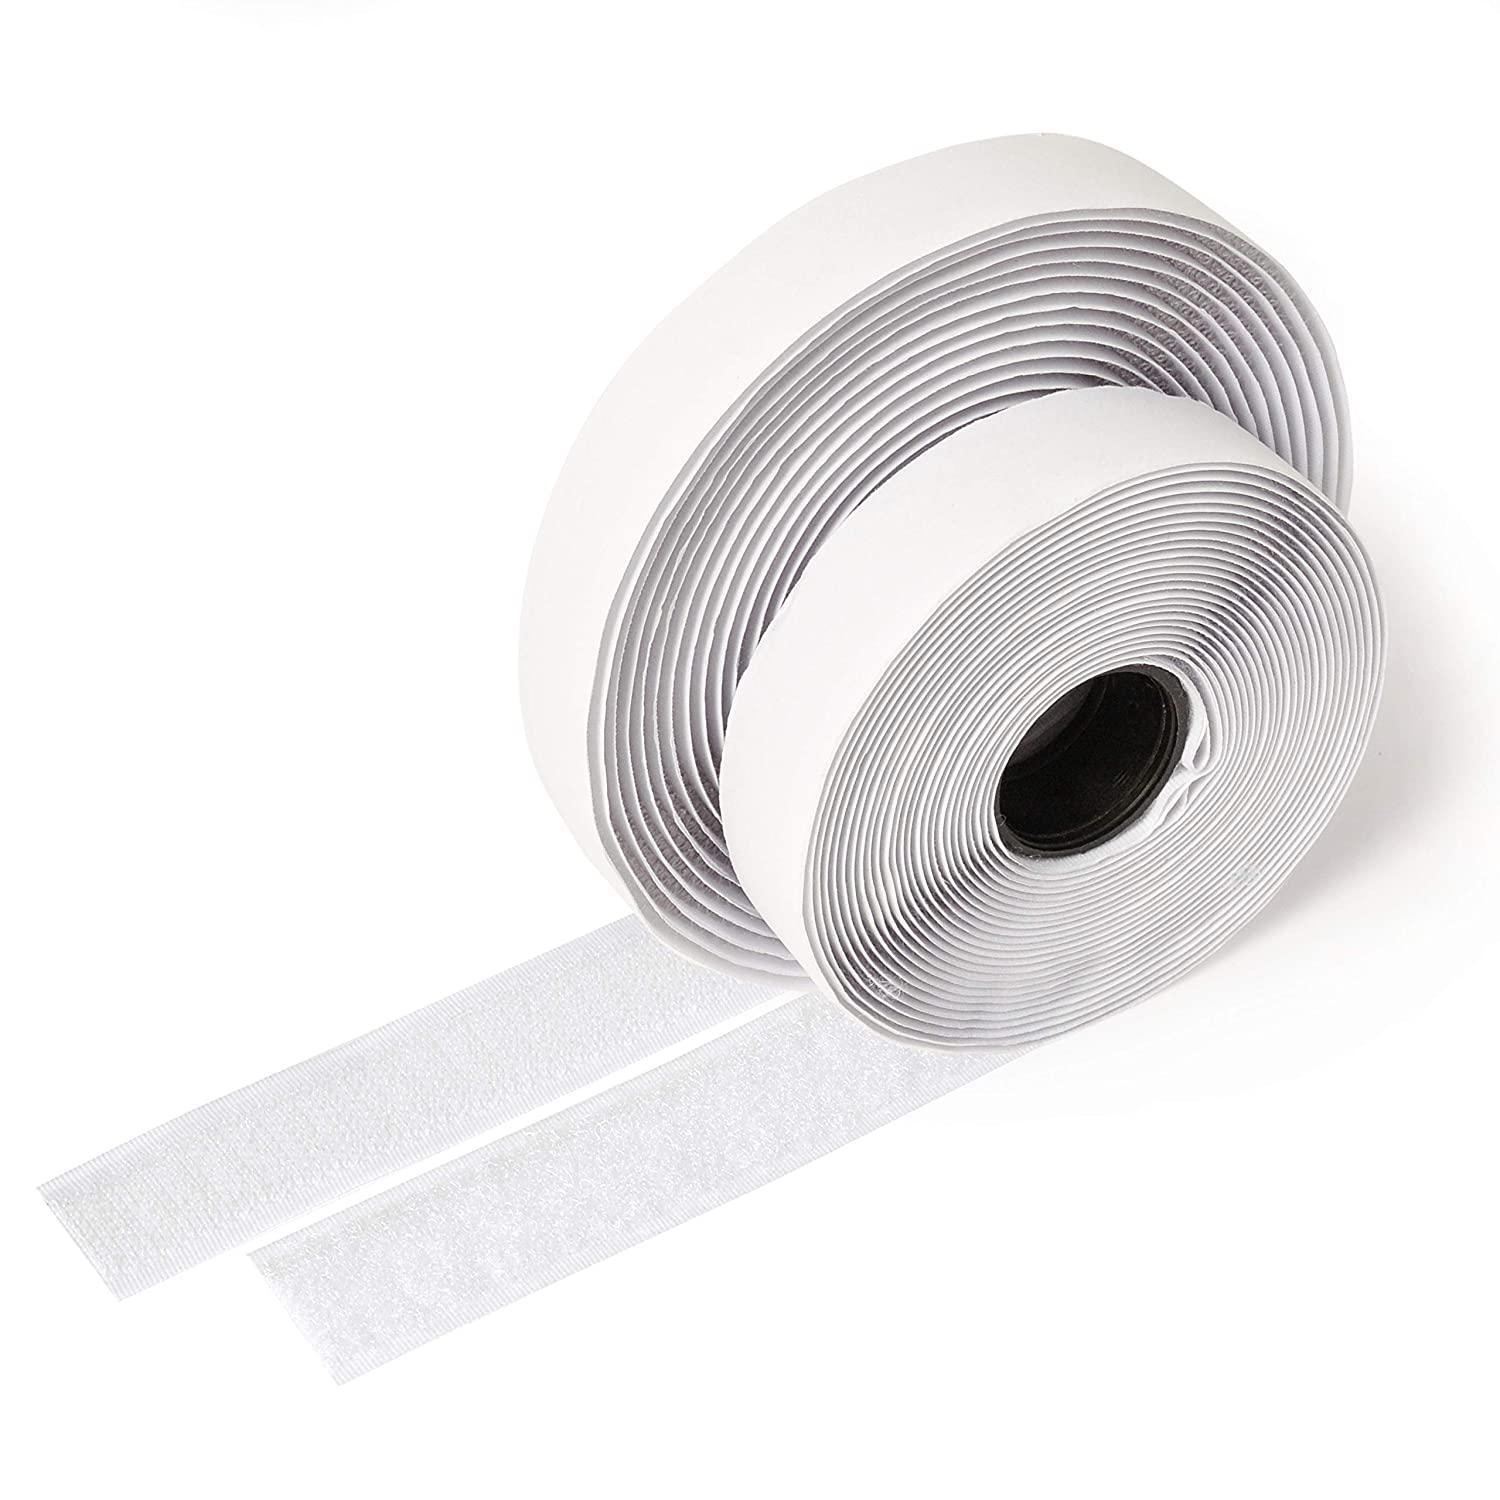 iLP Velcro tape white self-adhesive - 5 metres long approx. 20 mm wide - Secure fixing extra strong attachment for home improvements, craft and DIY - 1 roll of hook and loop tape iLP GmbH